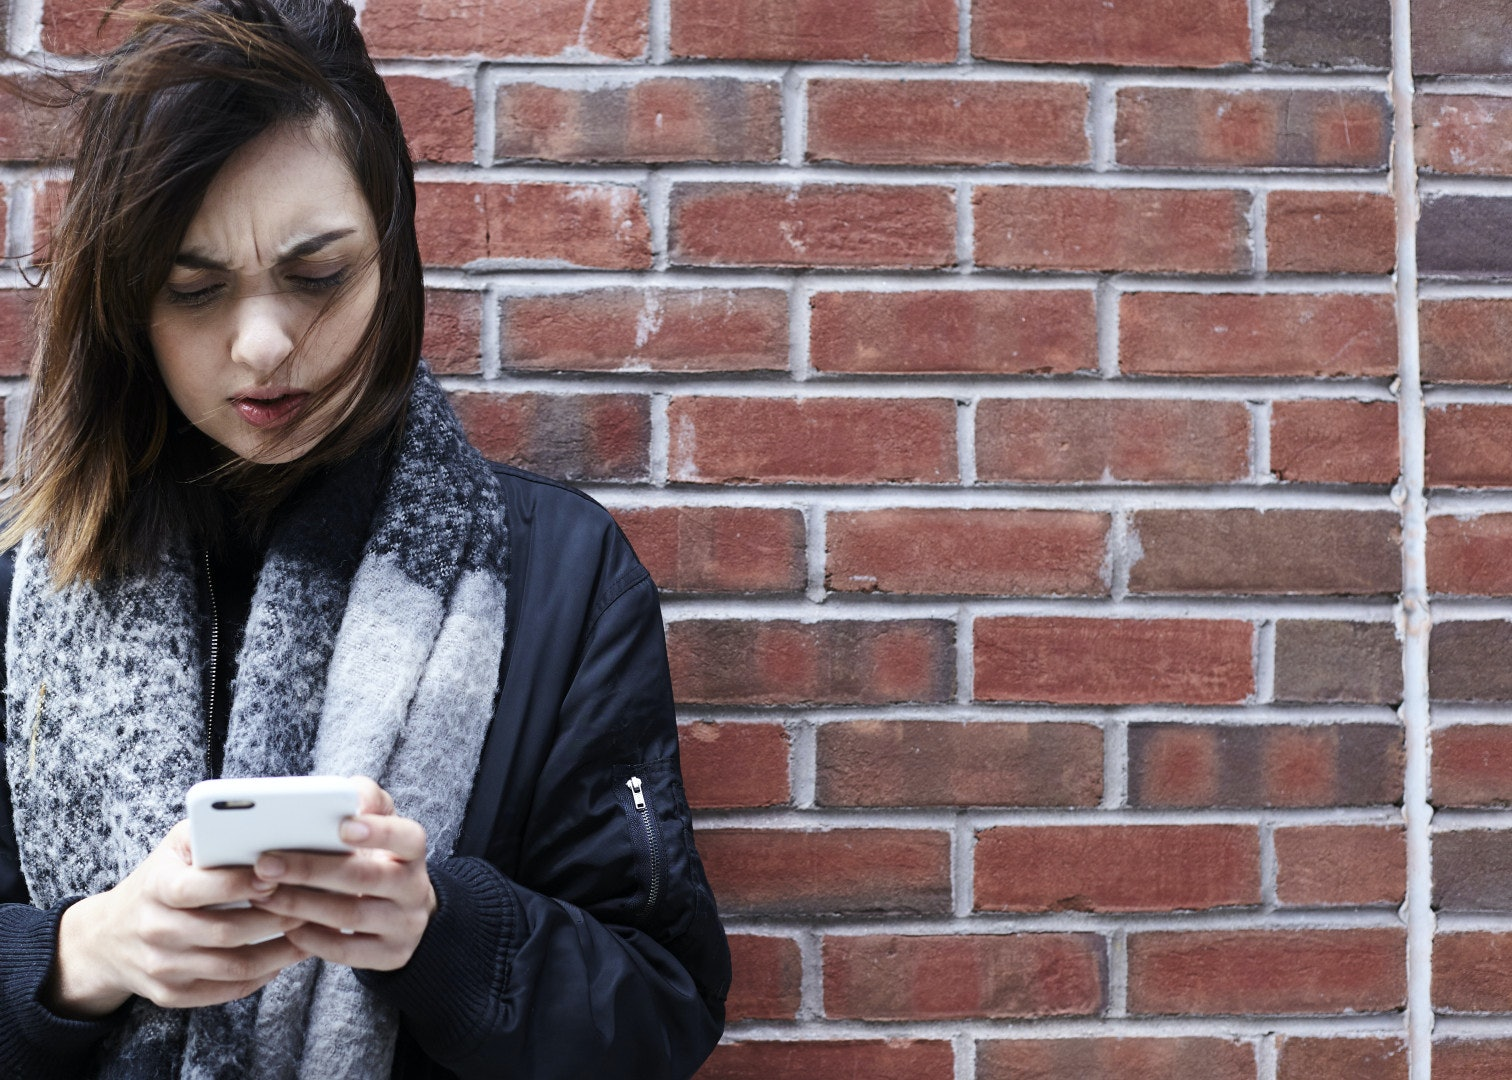 How to spot fake dating profiles